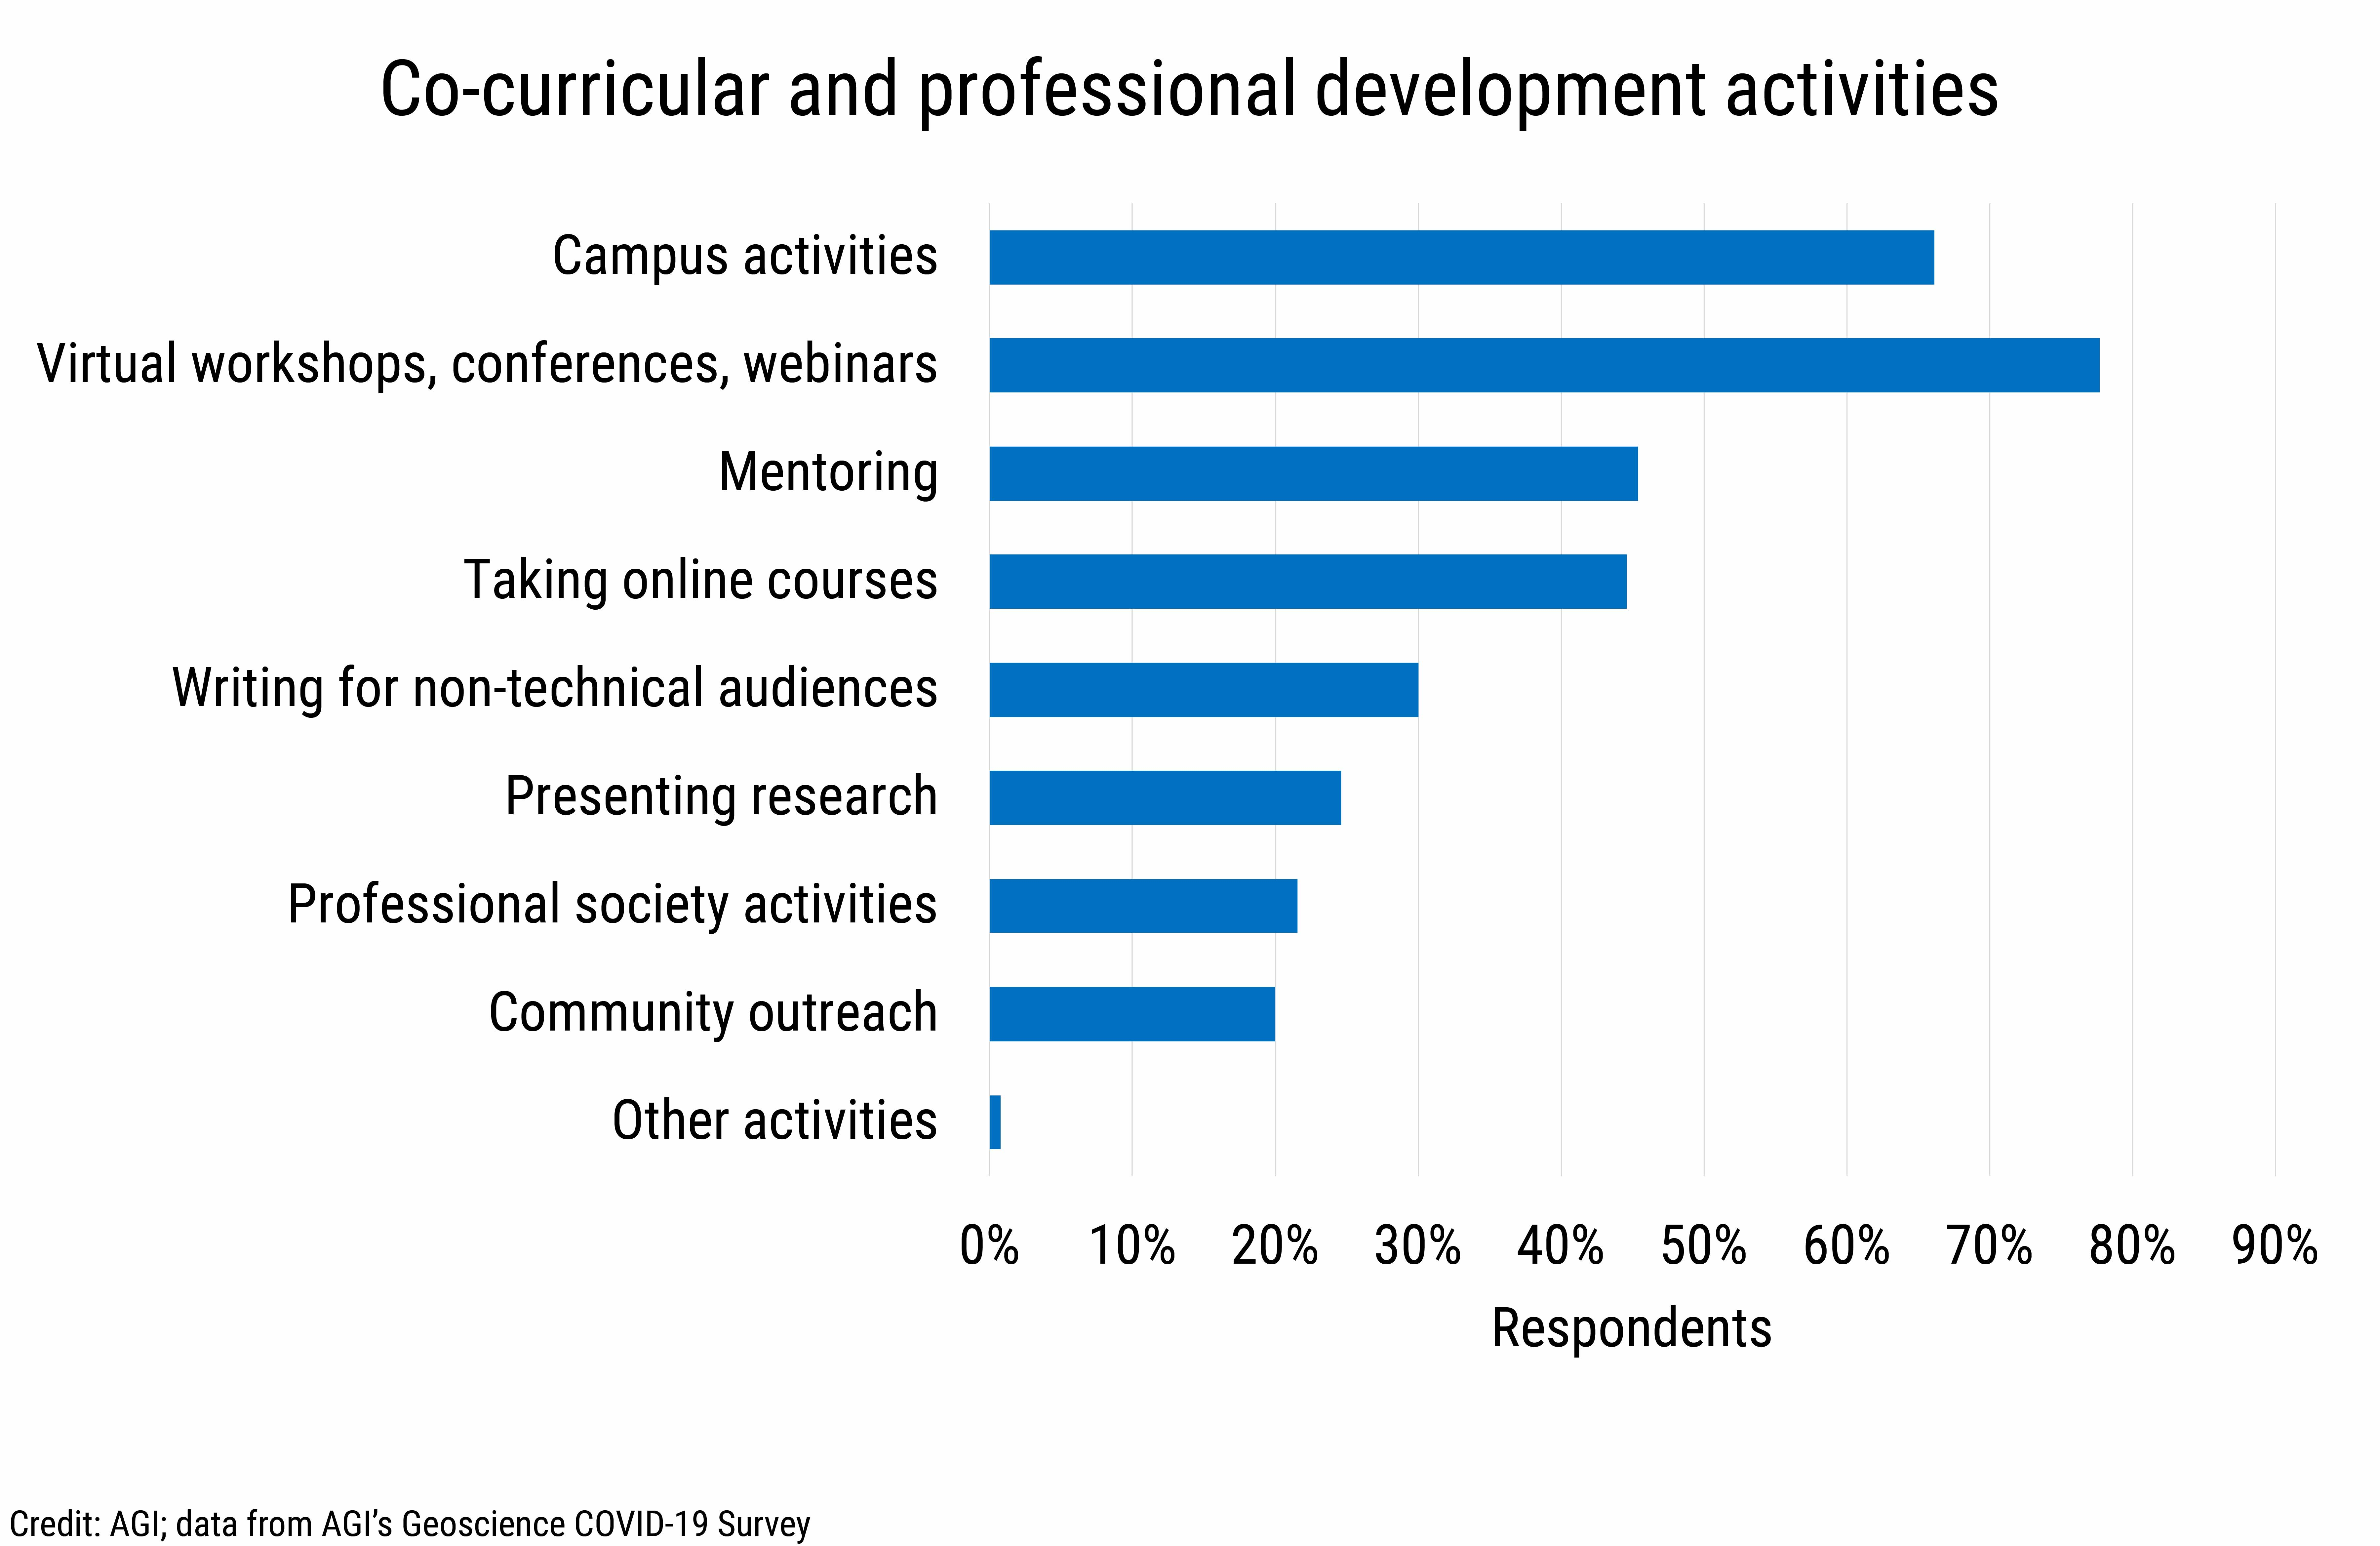 DB_2021-015 chart 05: Co-curricular and professional development activities (Credit: AGI; data from AGI's Geoscience COVID-19 Survey)